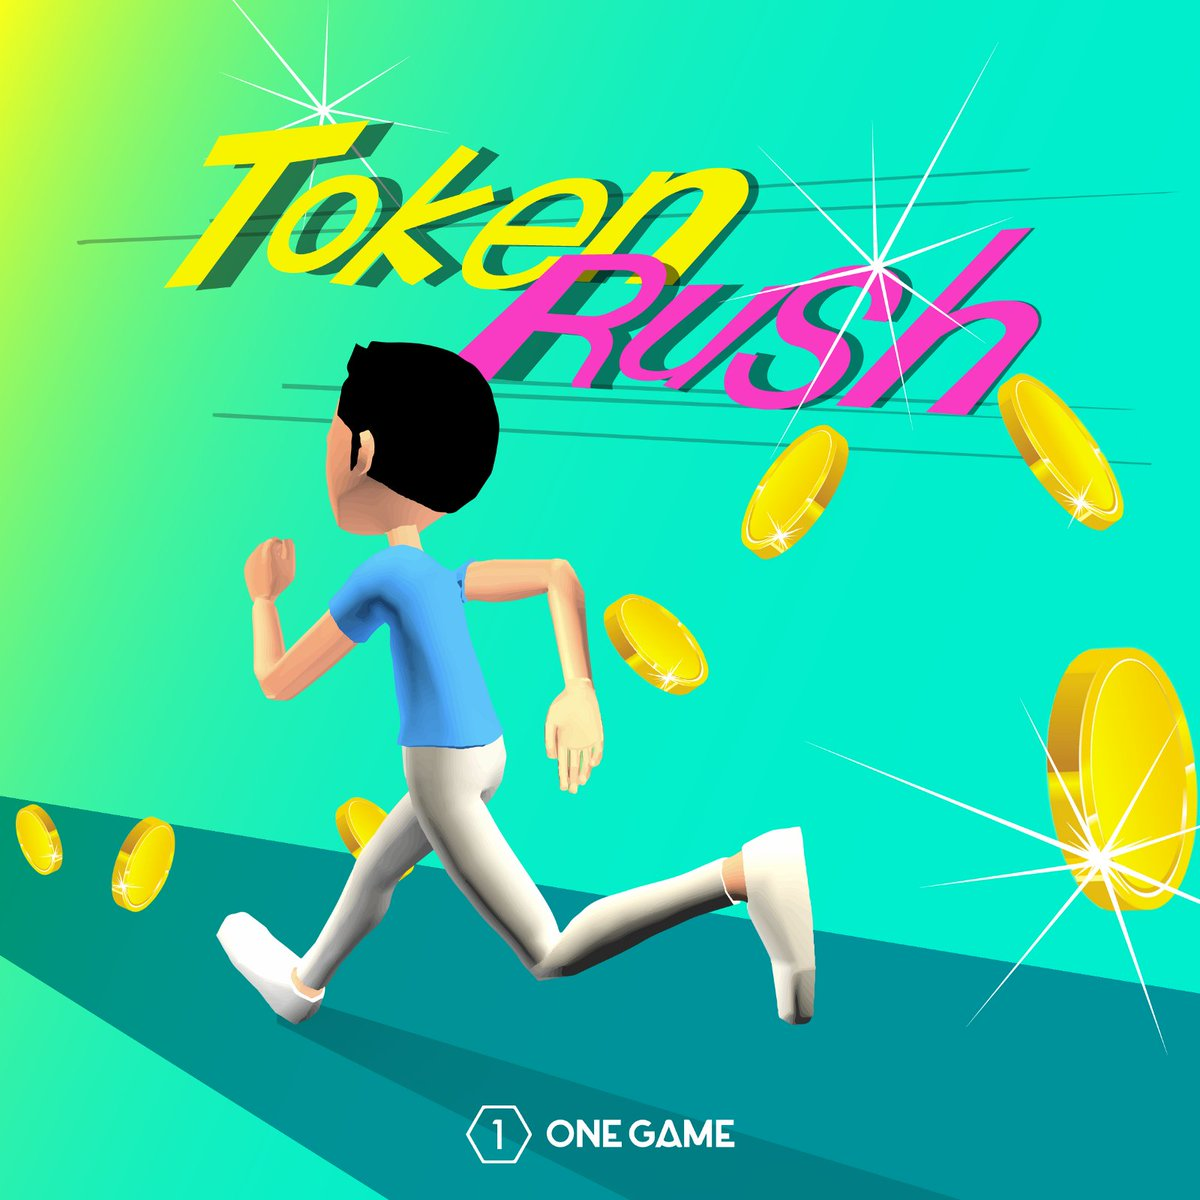 We have been featured by ICOBrothers about the One Game Token Rush in the Avatar Wallet!   https:// icobrothers.media/2018/08/14/one -game-launches-token-rush/ &nbsp; …    Avatar Wallet:  https:// m.one.game / &nbsp;        #PlayNow #LevelUp #PlayToWin #OneGameRocks <br>http://pic.twitter.com/tnw5wpFBiJ